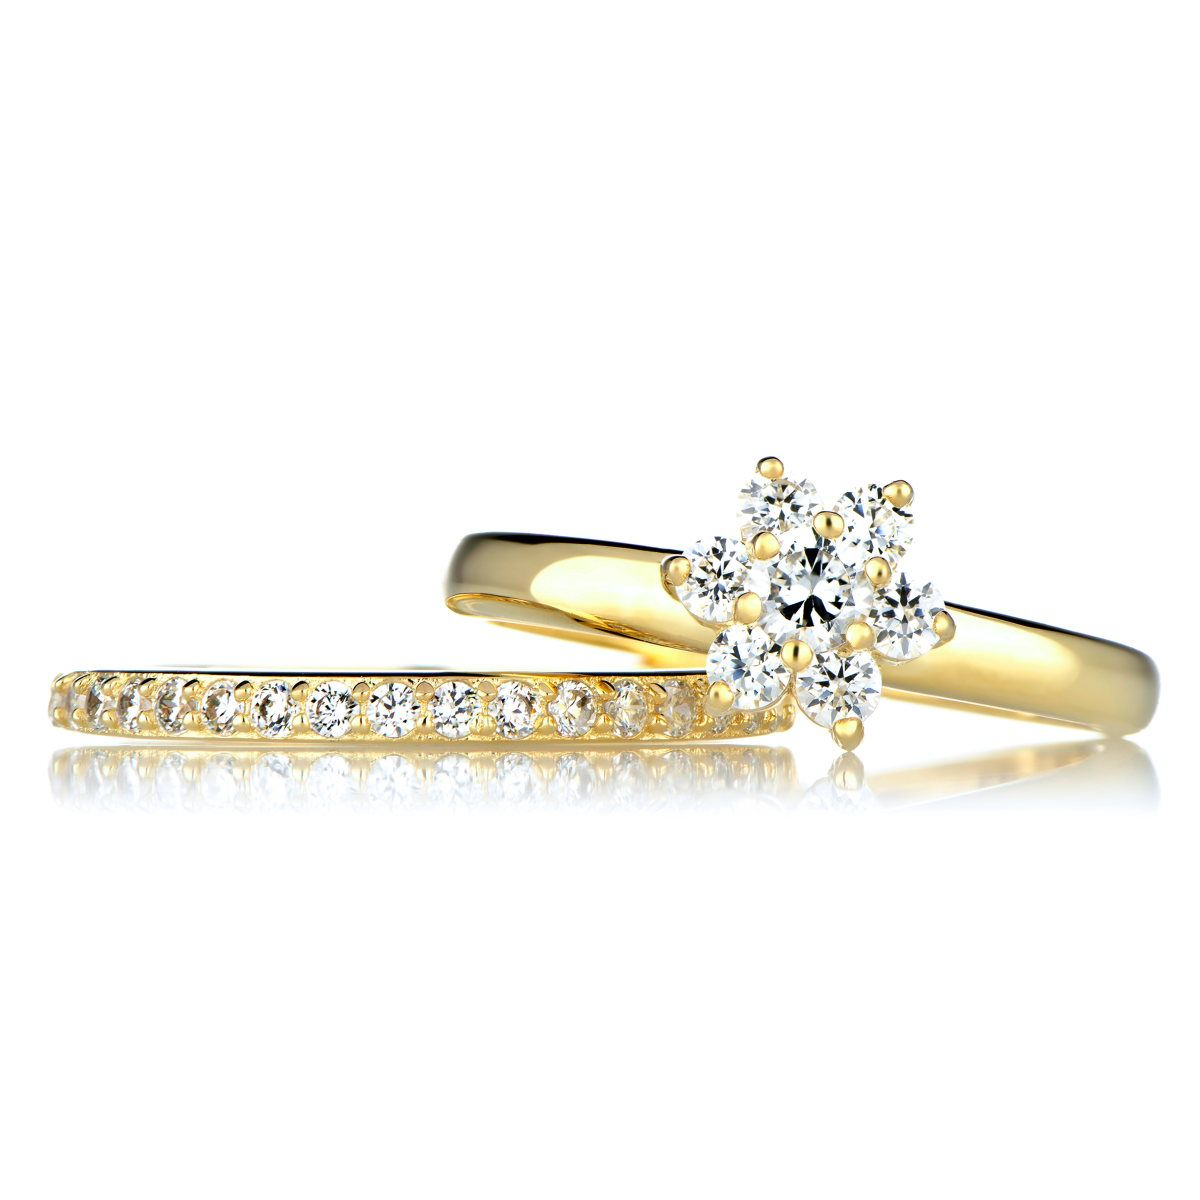 pictures gallery of gold wedding ring set - Gold Wedding Ring Sets